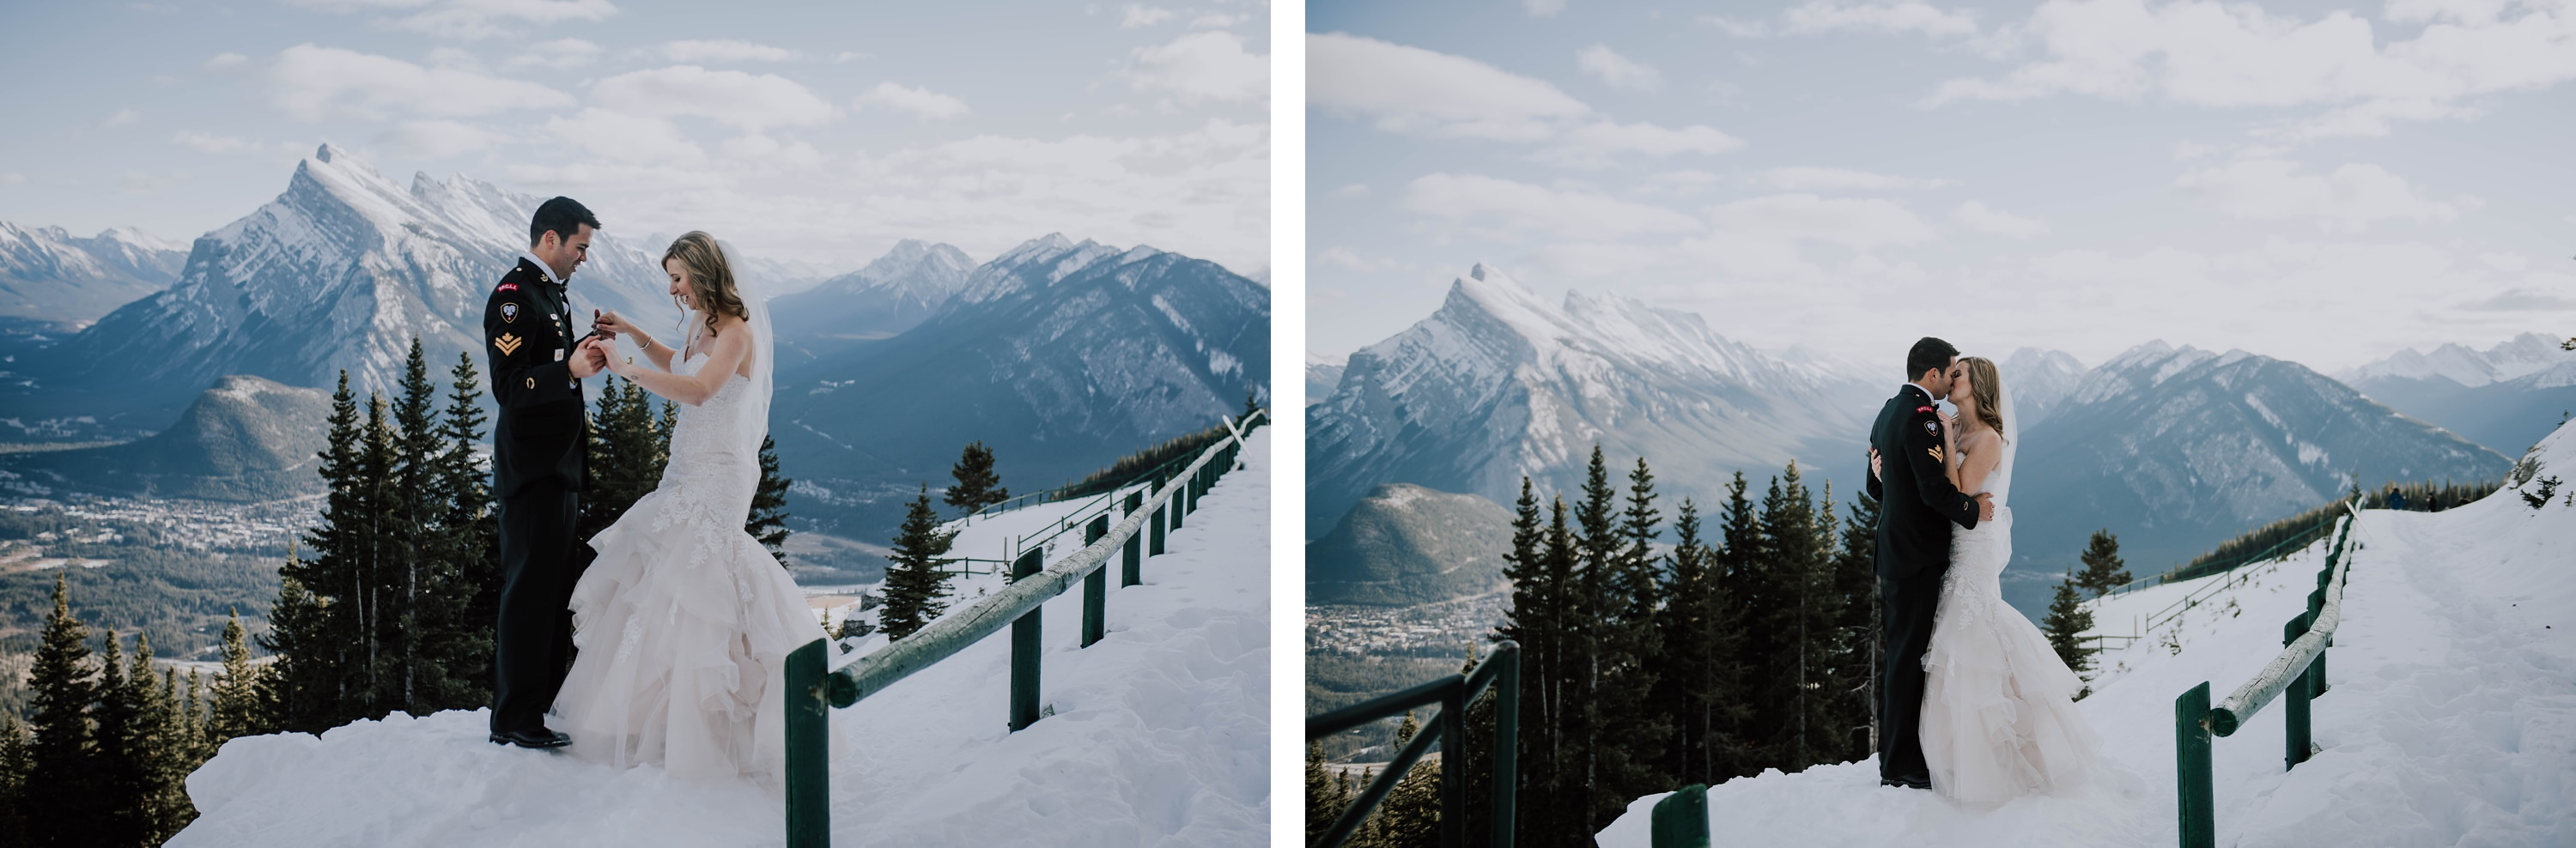 bride and groom on the top of mount Norquay in winter wedding